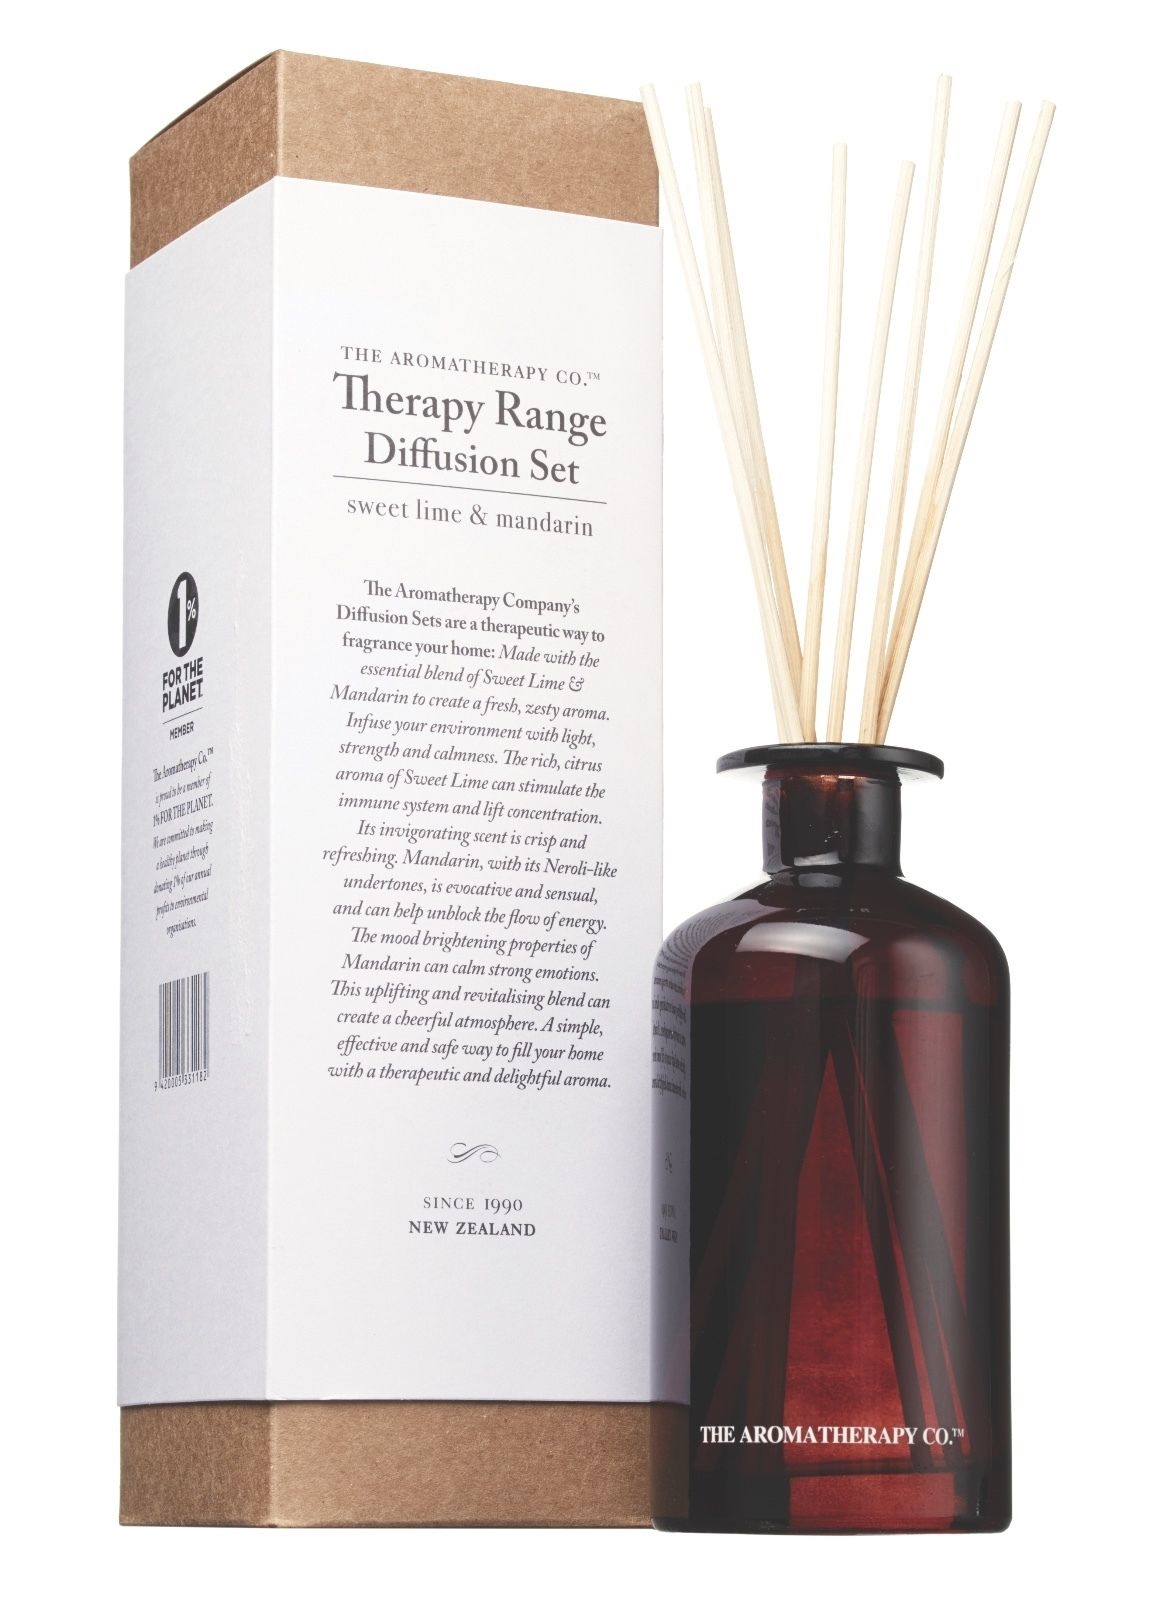 #90643B Aromatherapy Co. Reed Diffuser Set Sweet Lime & Mandarin  Most Effective 1175 Aromatherapy Diffuser Set pictures with 1160x1600 px on helpvideos.info - Air Conditioners, Air Coolers and more